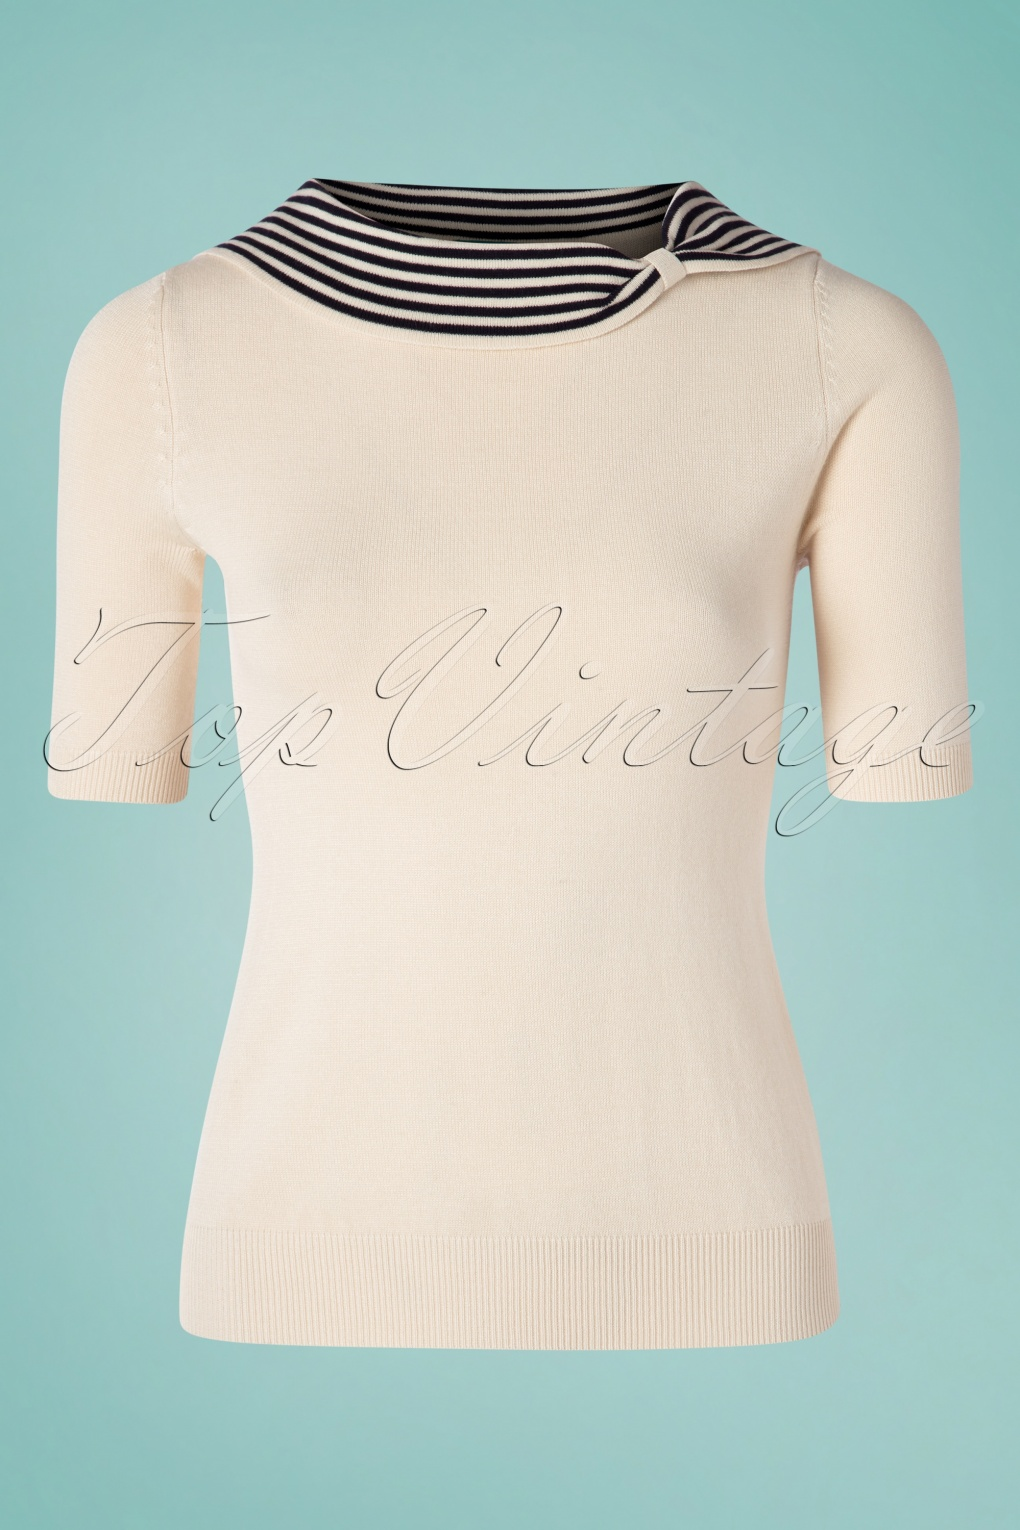 1960s Style Dresses, Clothing, Shoes UK 50s Annette Knitted Top in Navy and Cream �51.43 AT vintagedancer.com